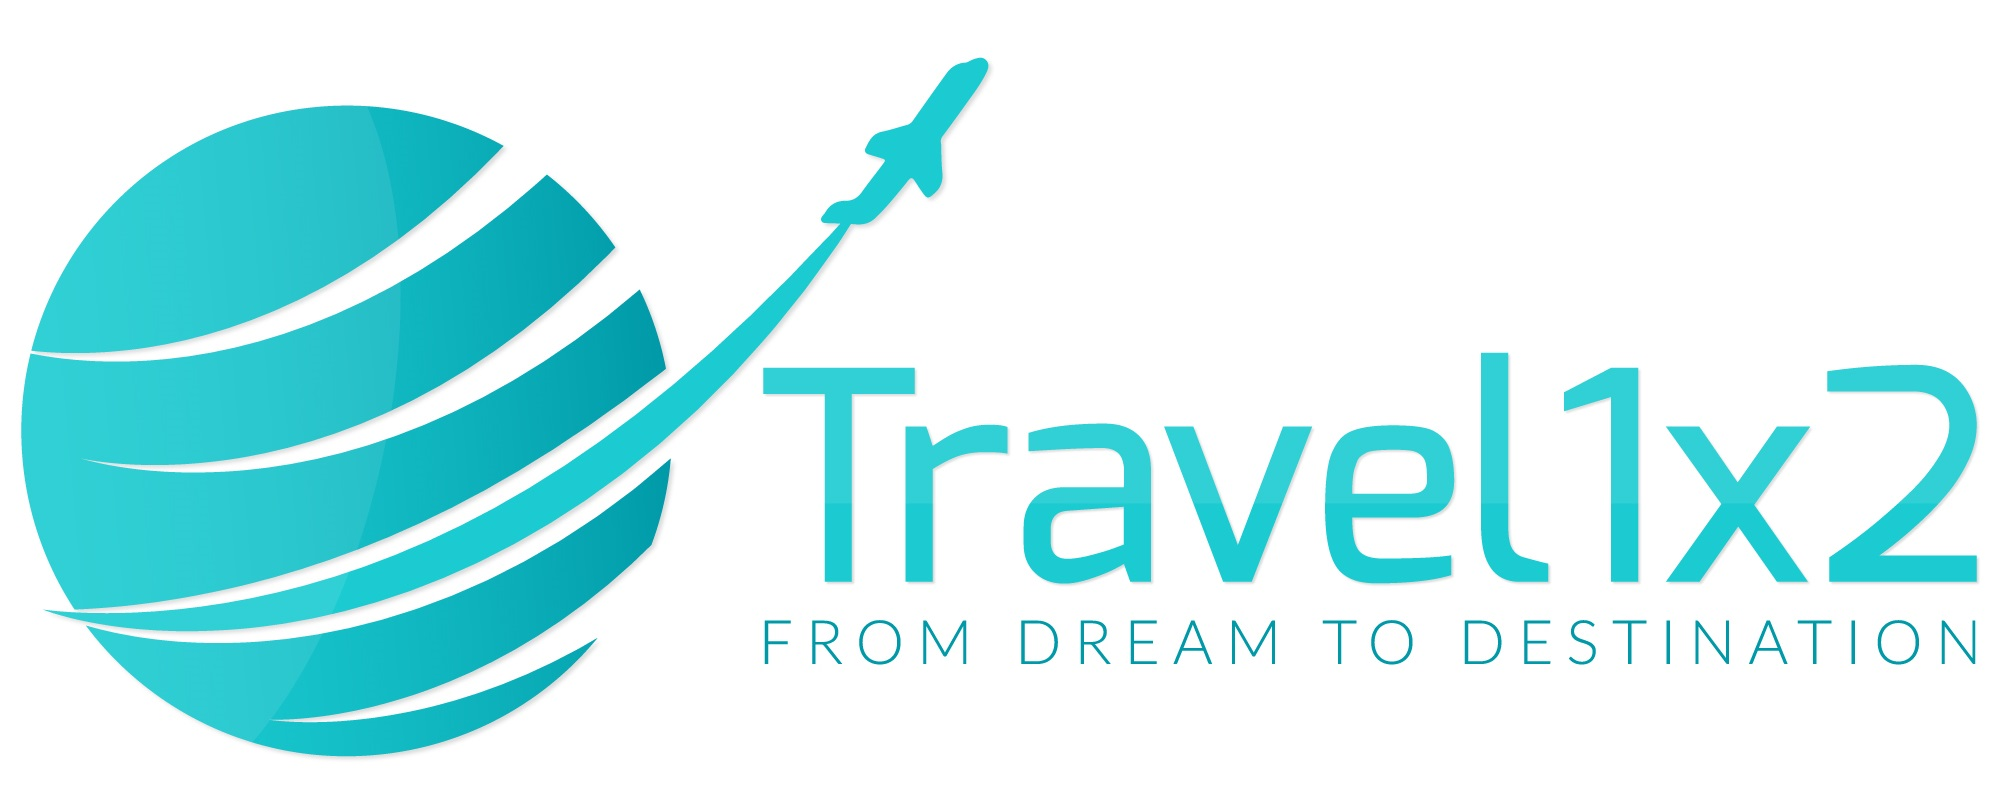 Travel1x2 | Flight & Travel Deals Worldwide